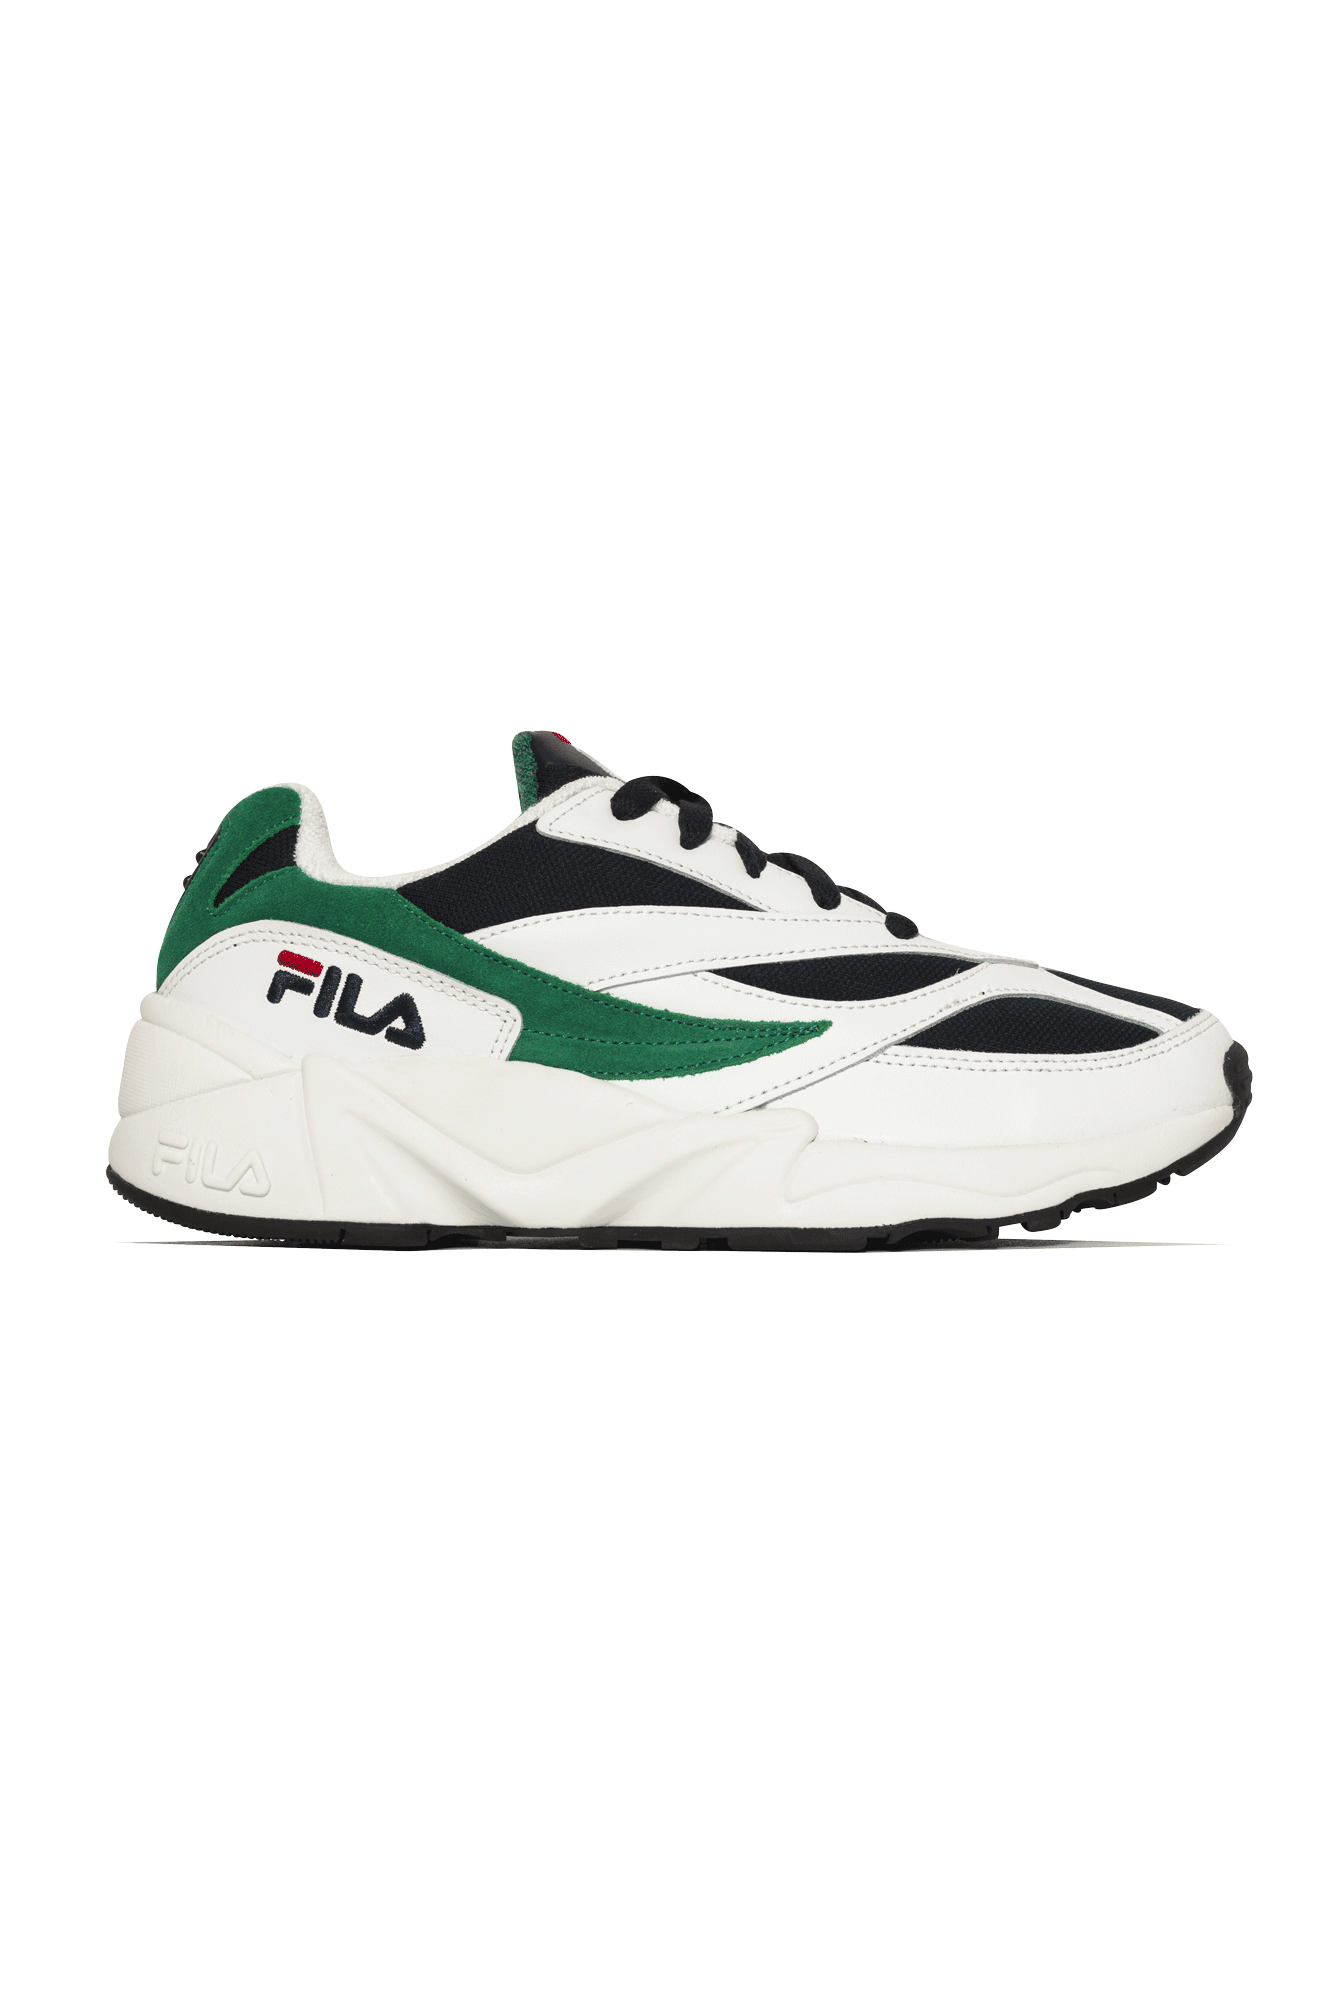 Fila Sneakers Venom Low WMN White 1010291#000#00Q#6 - One Block Down